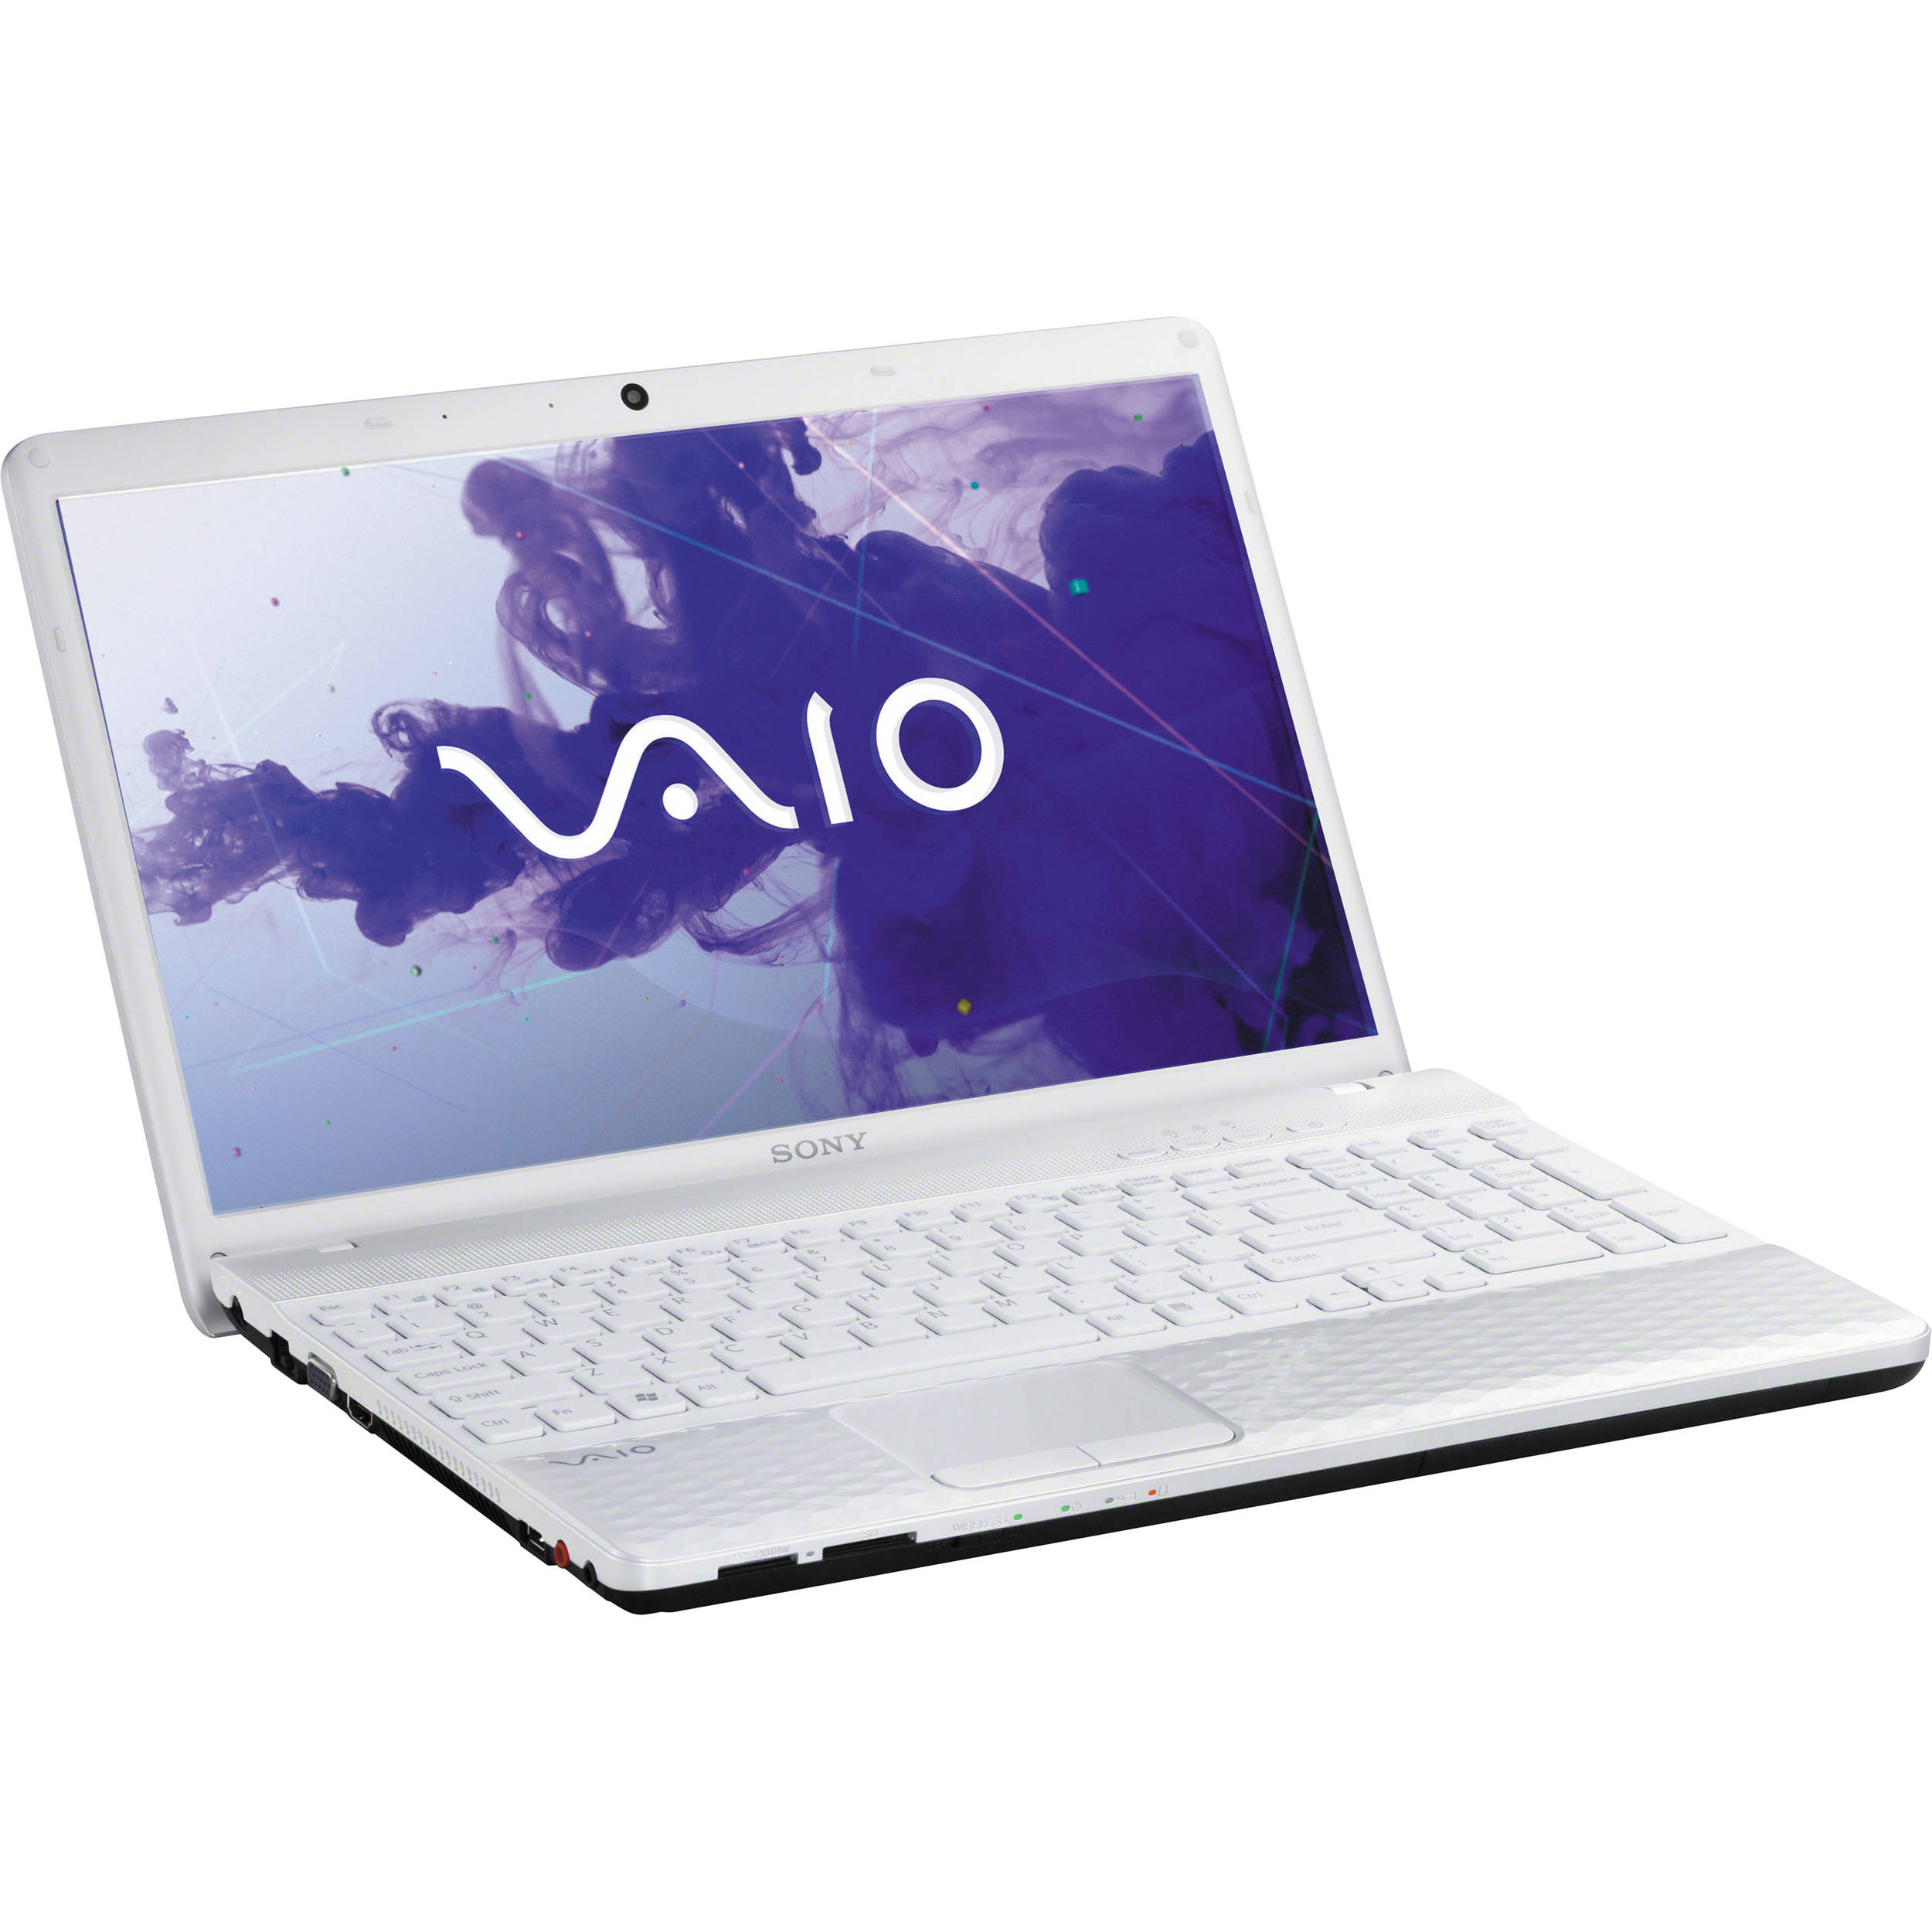 Download Drivers: Sony Vaio VPCEH23FX/W